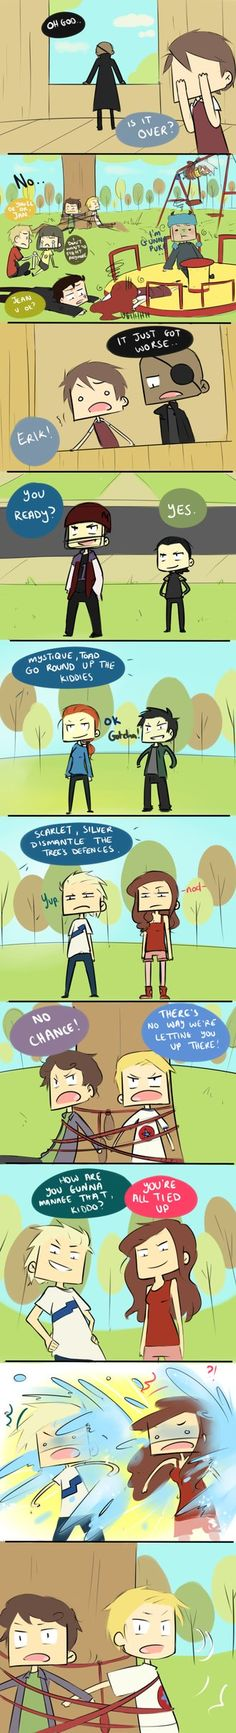 Attack of the Teens Pt. 11 by ~blargberries on deviantART